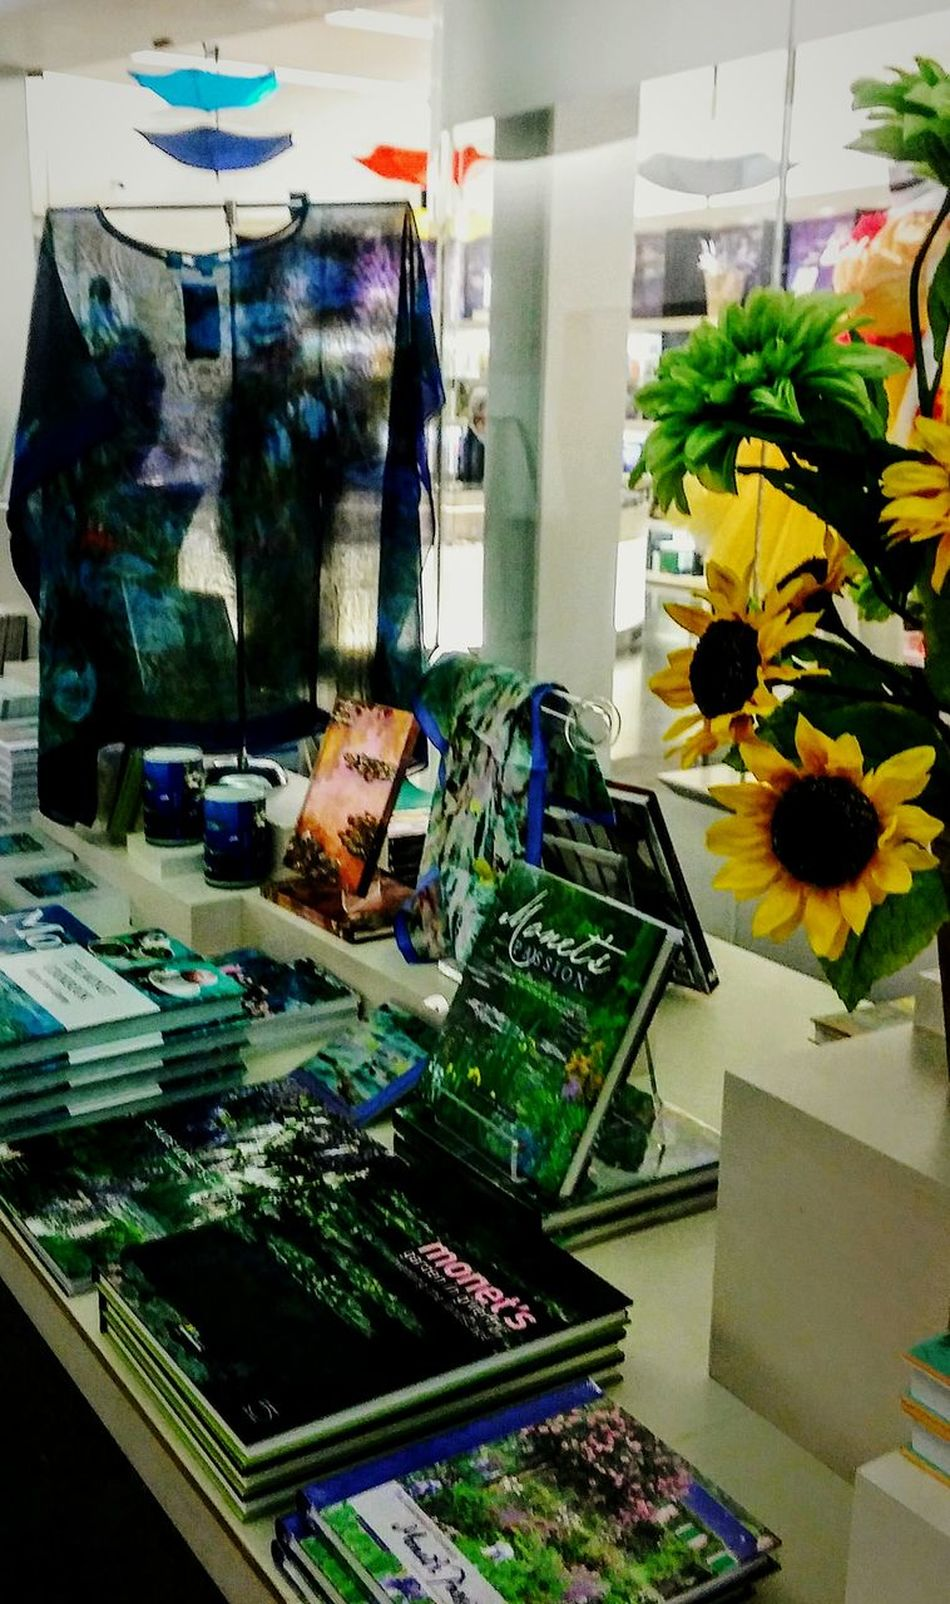 Indoors  No People Retail  Day Irwin Collection Museum Store Museum Of Fine Arts Book Store Sunflowers ♥ Eyem Gallery Flowers Books ♥ EyeEm Diversity